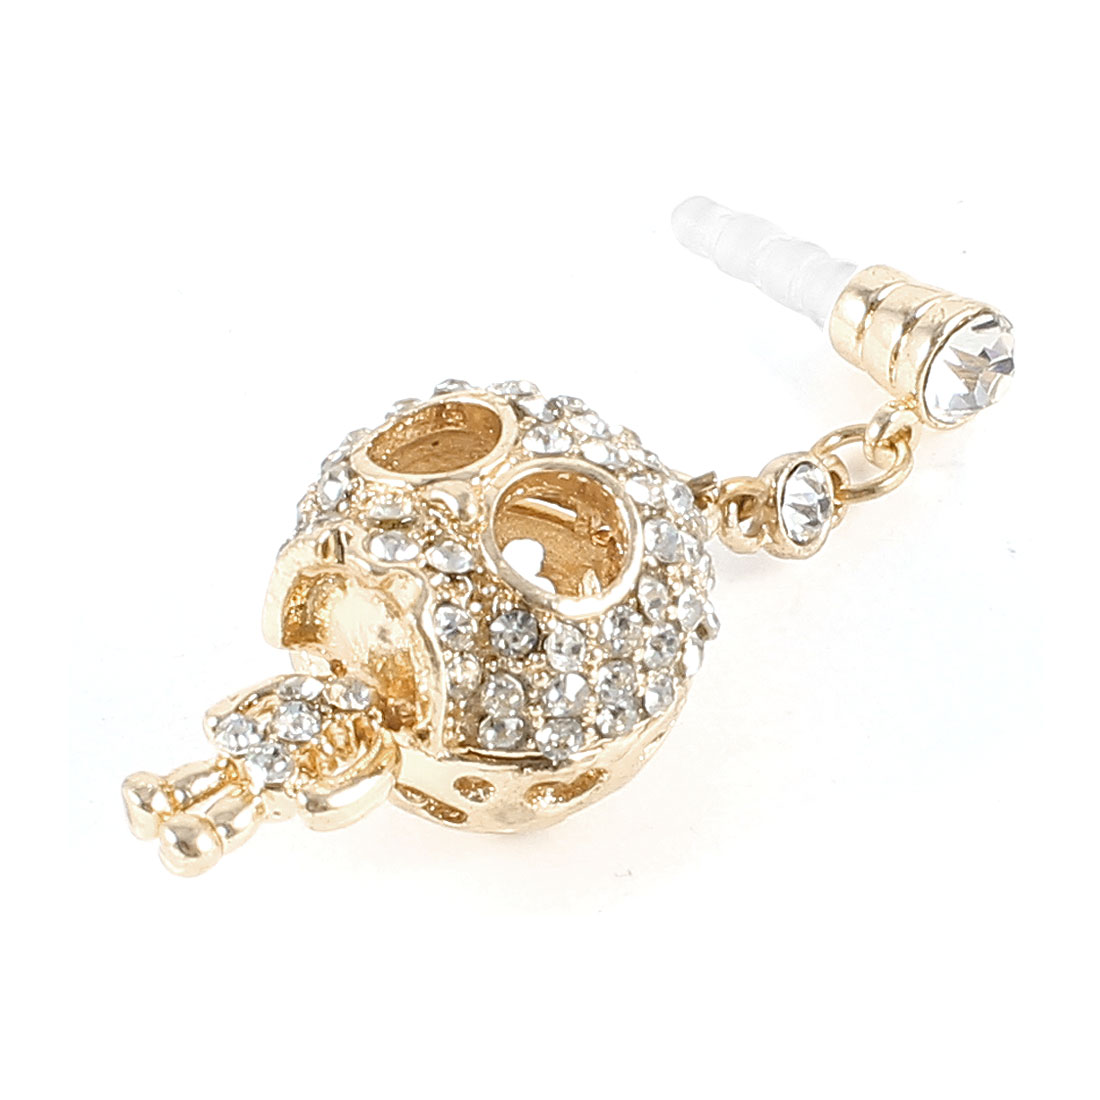 Gold Tone Clear Rhinestone Decoration Skull Pendant 3.5mm Dust Ear Cap Stopper for Cell Phone Smartphone